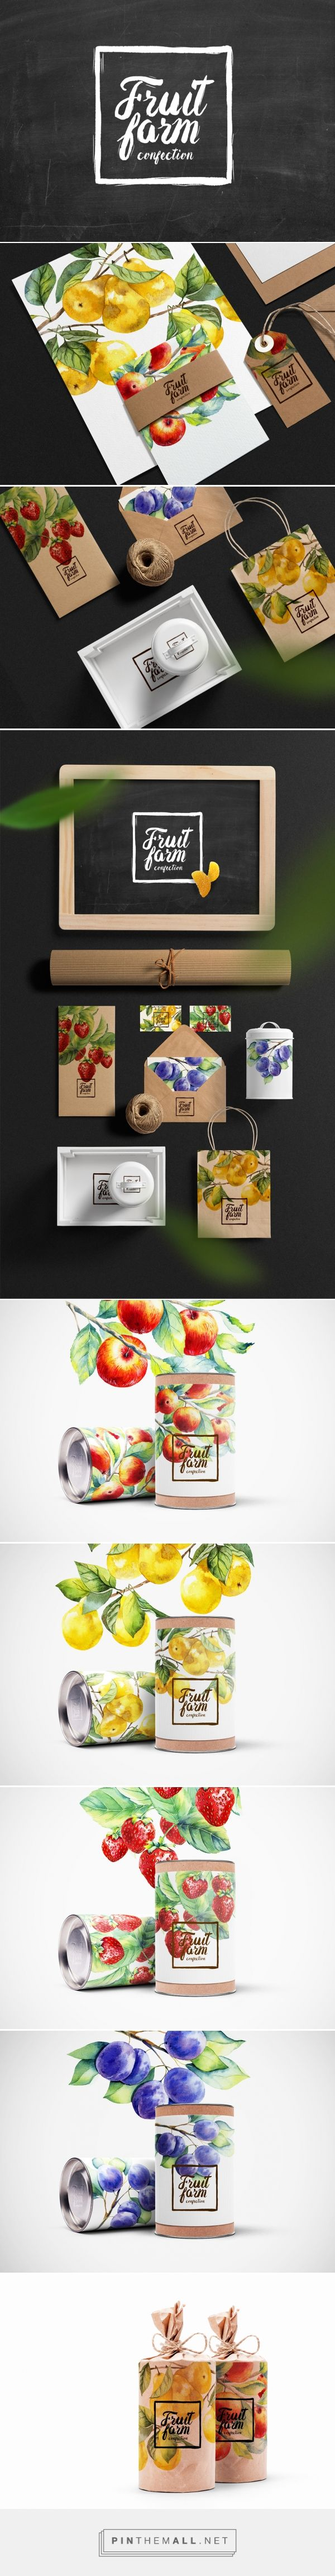 упаковка фруктовых конфет on Behance via Rina Rusyaeva, Krasnodar, Russian Federation curated by Packaging Diva PD  Wow are these fruit packaging illustrations pretty.